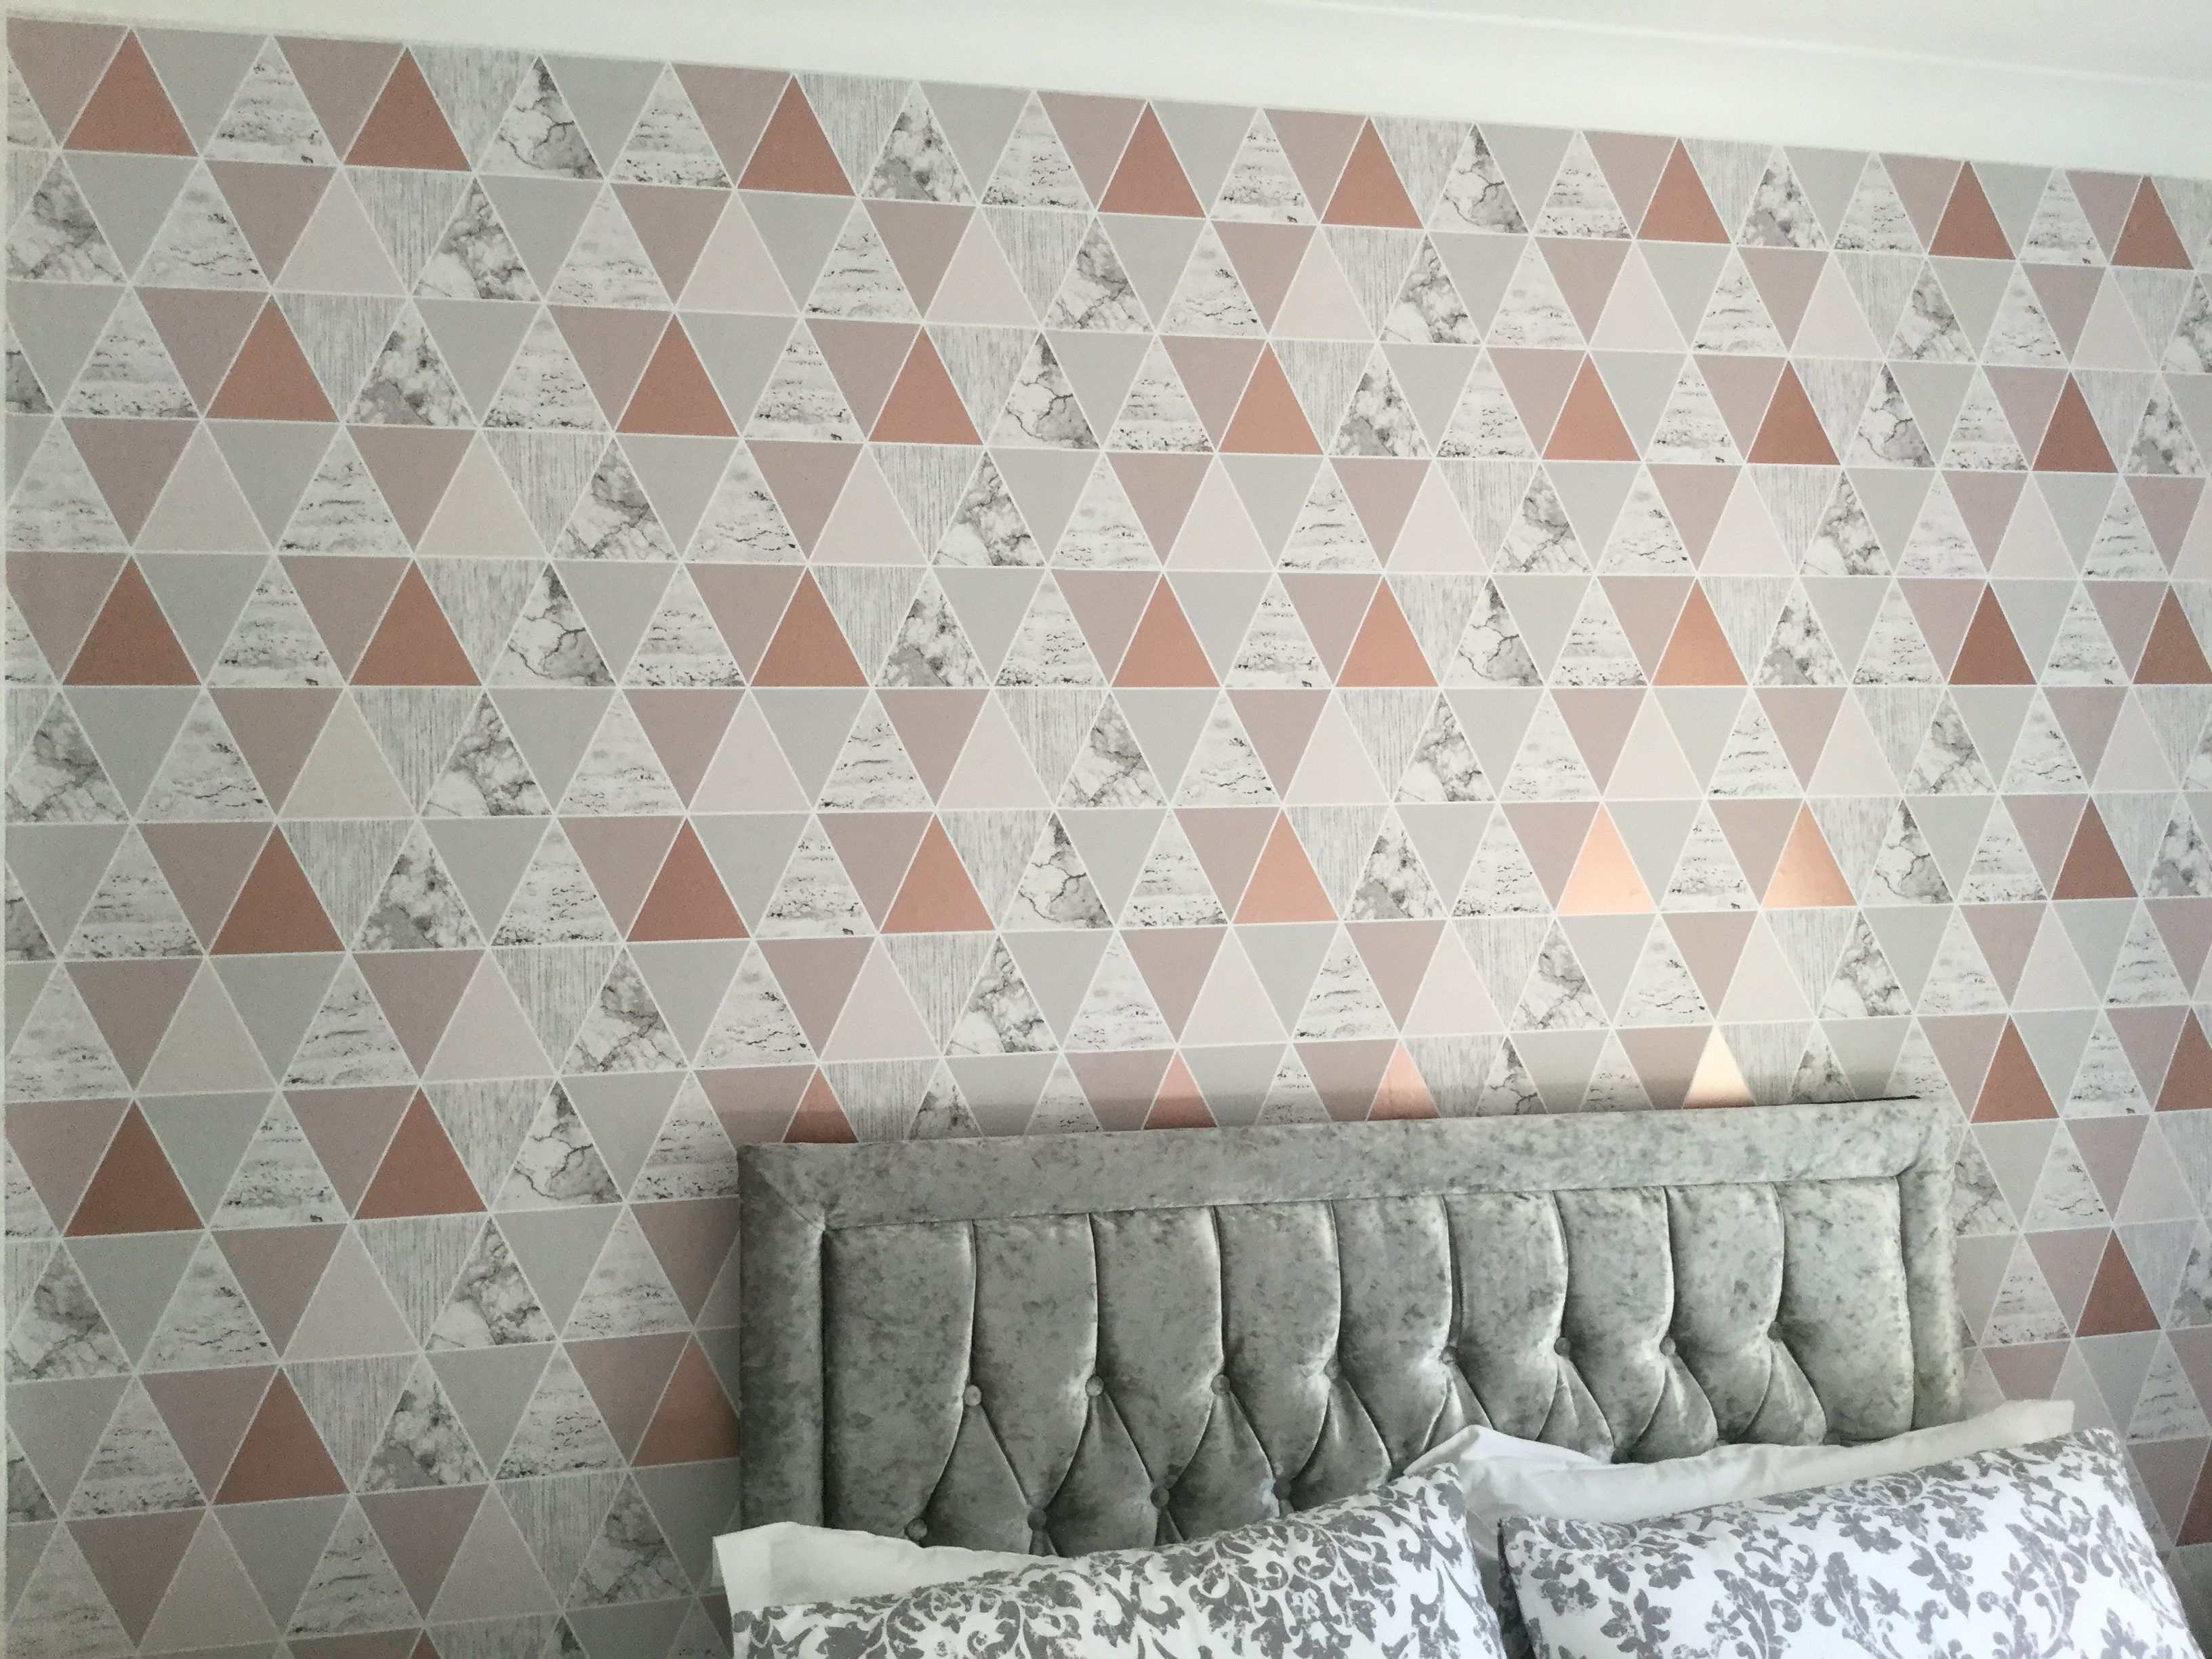 Bedroom, wallpaper of the year, rose gold reflection, graham and brown, grey, silver, pink